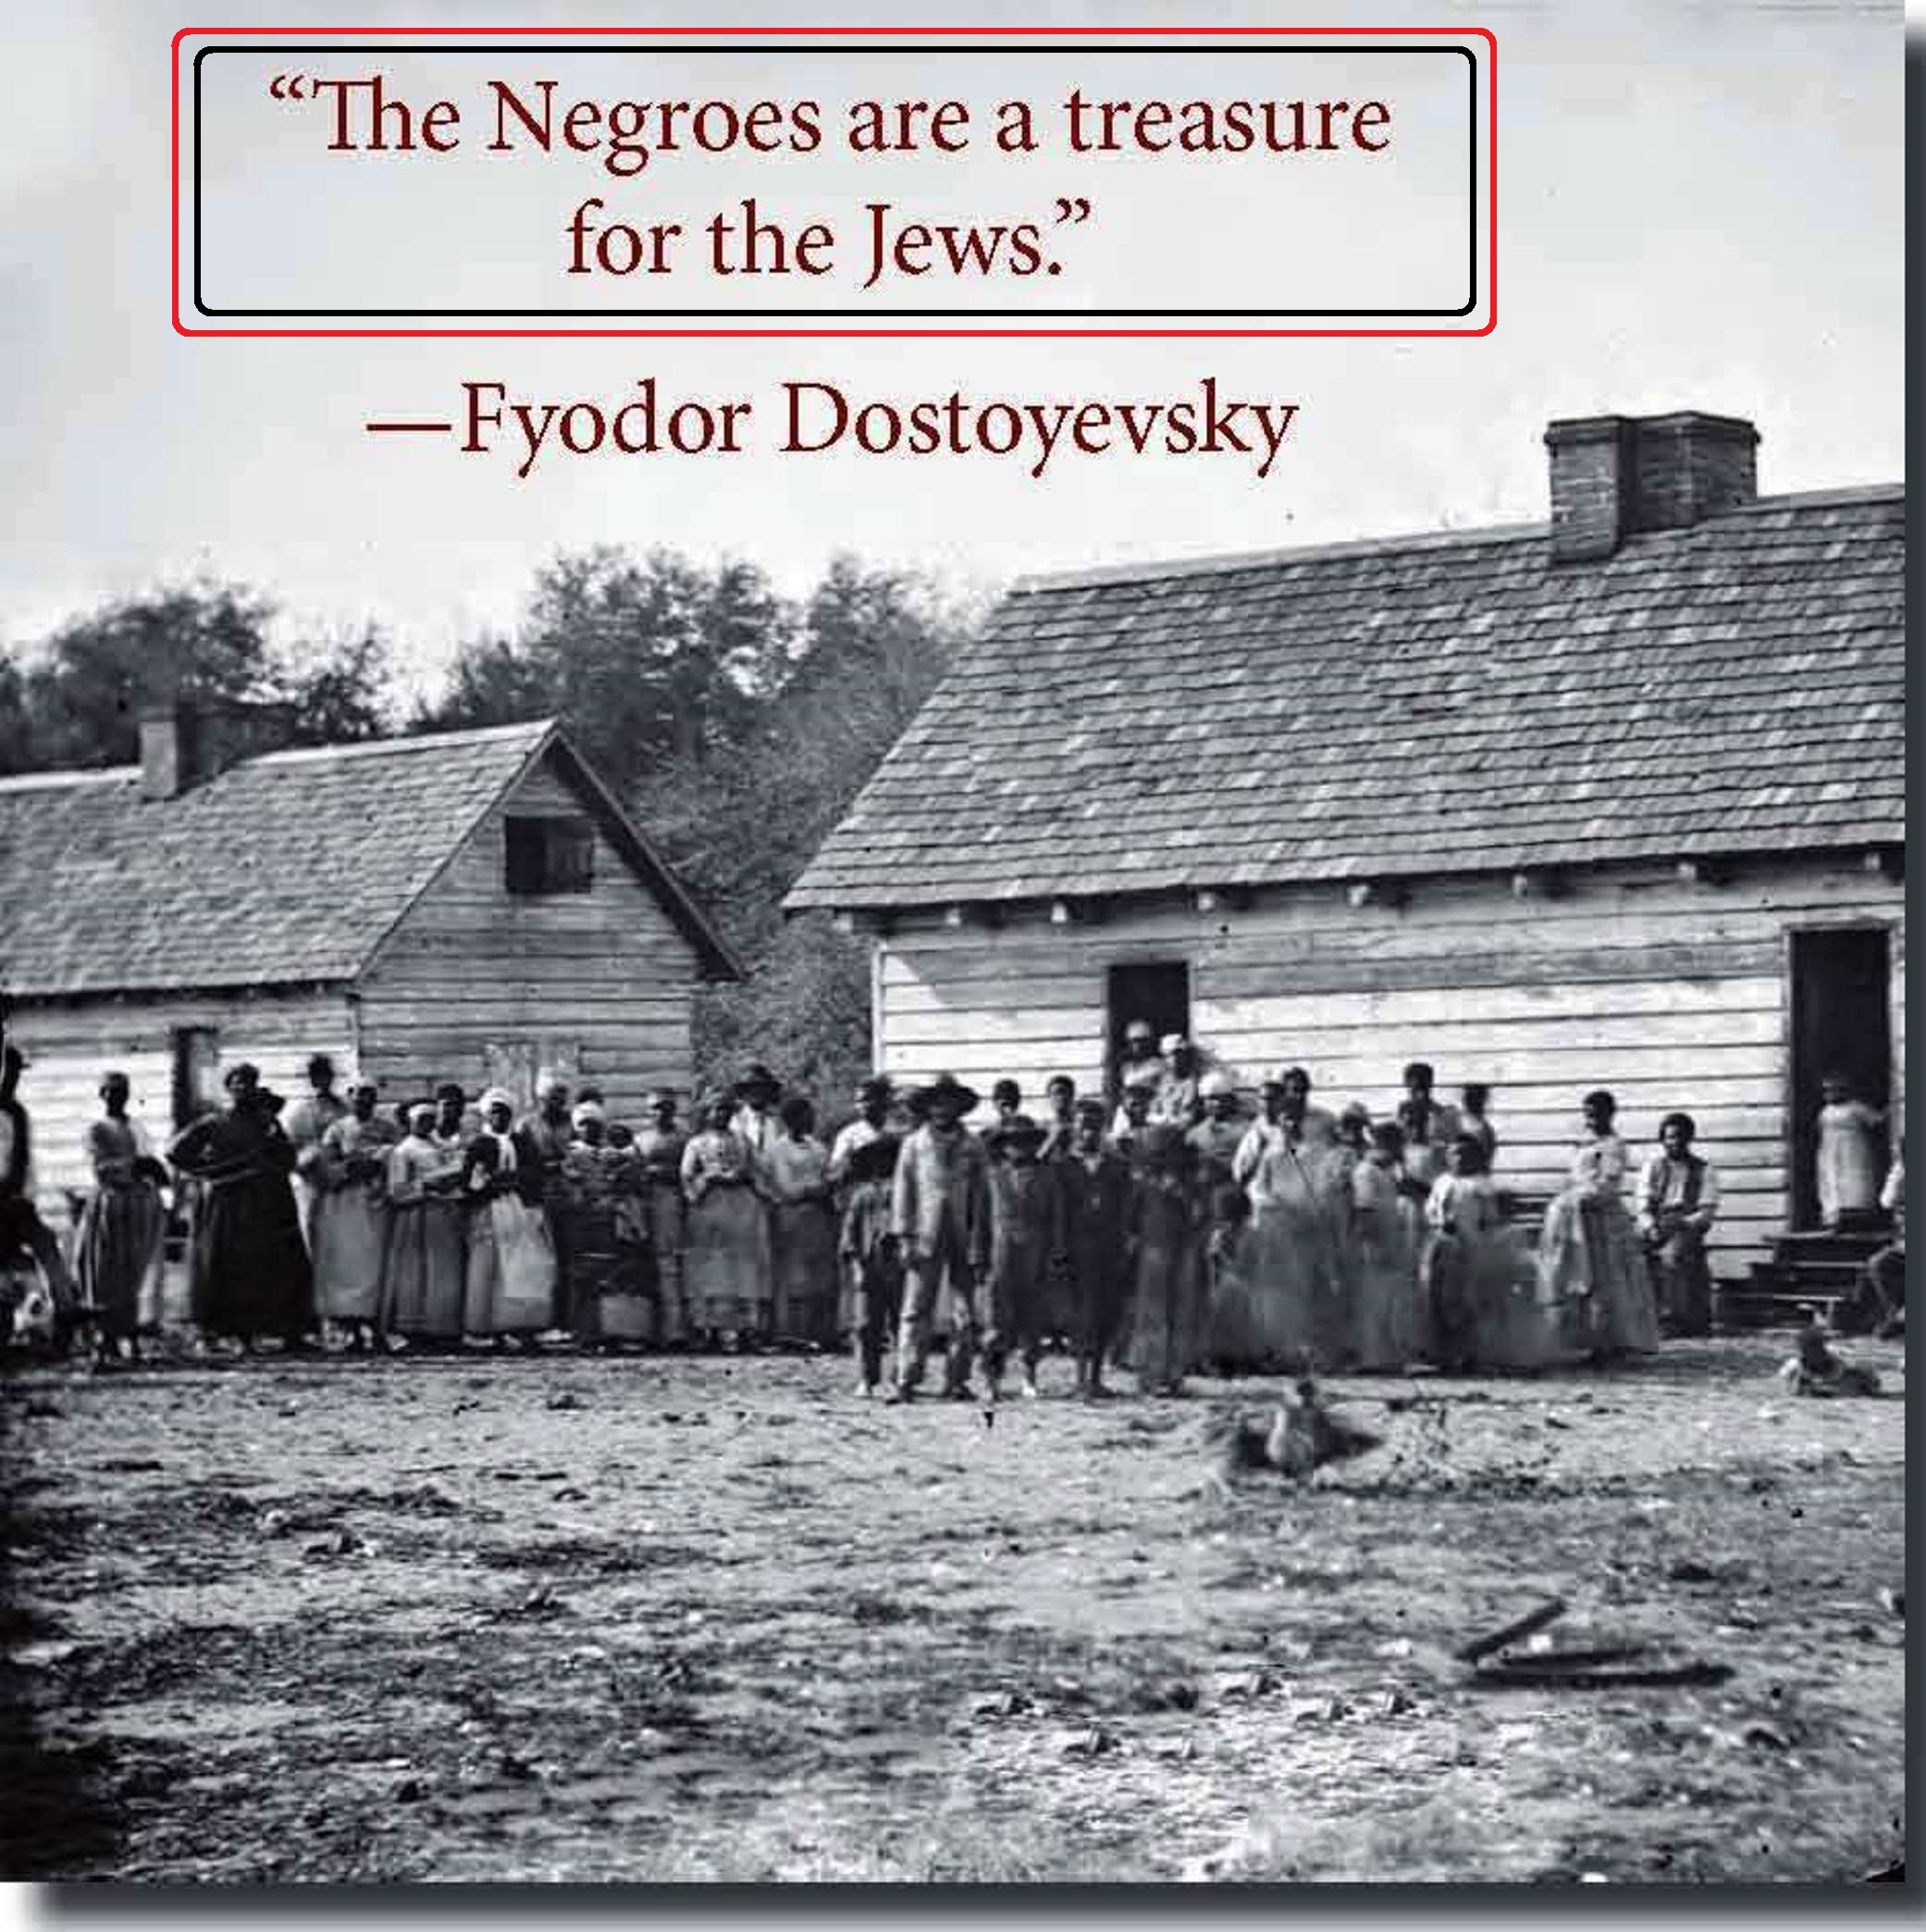 Negroes are a treasure for the Jews